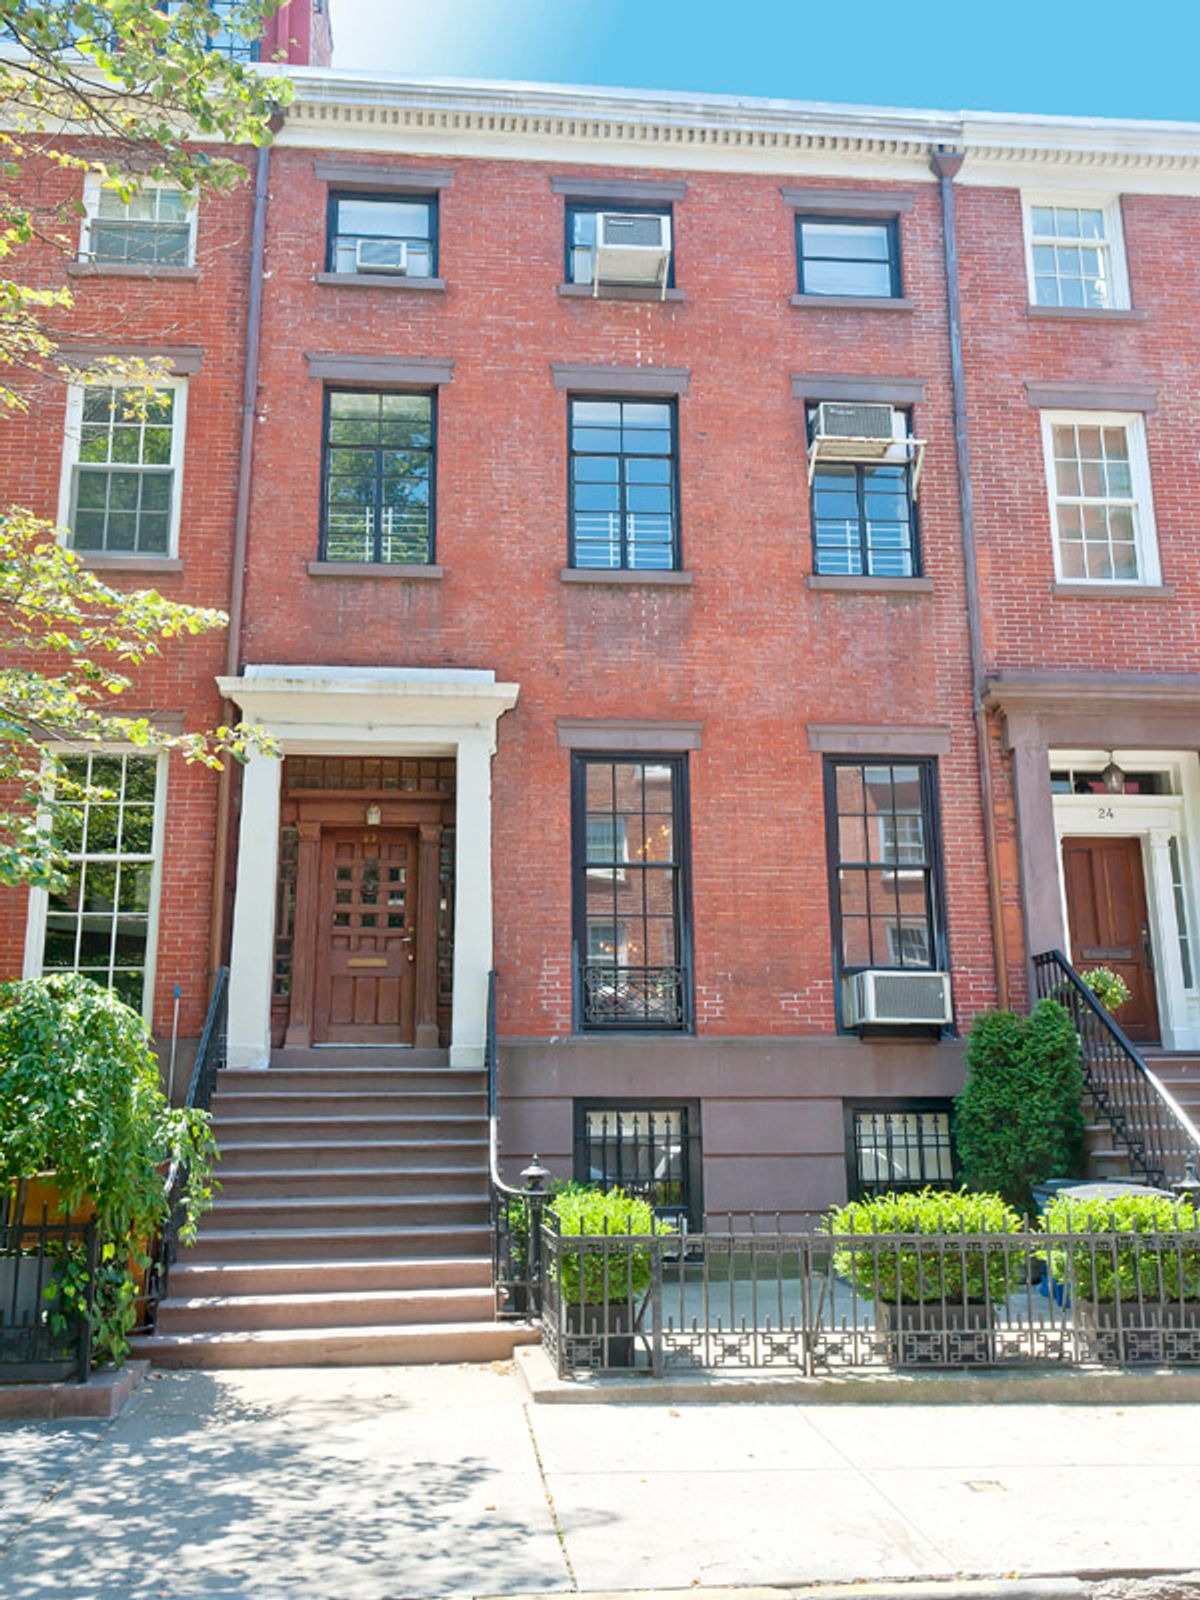 22 West 11th Street, New York NY Townhouse - New York City Real Estate